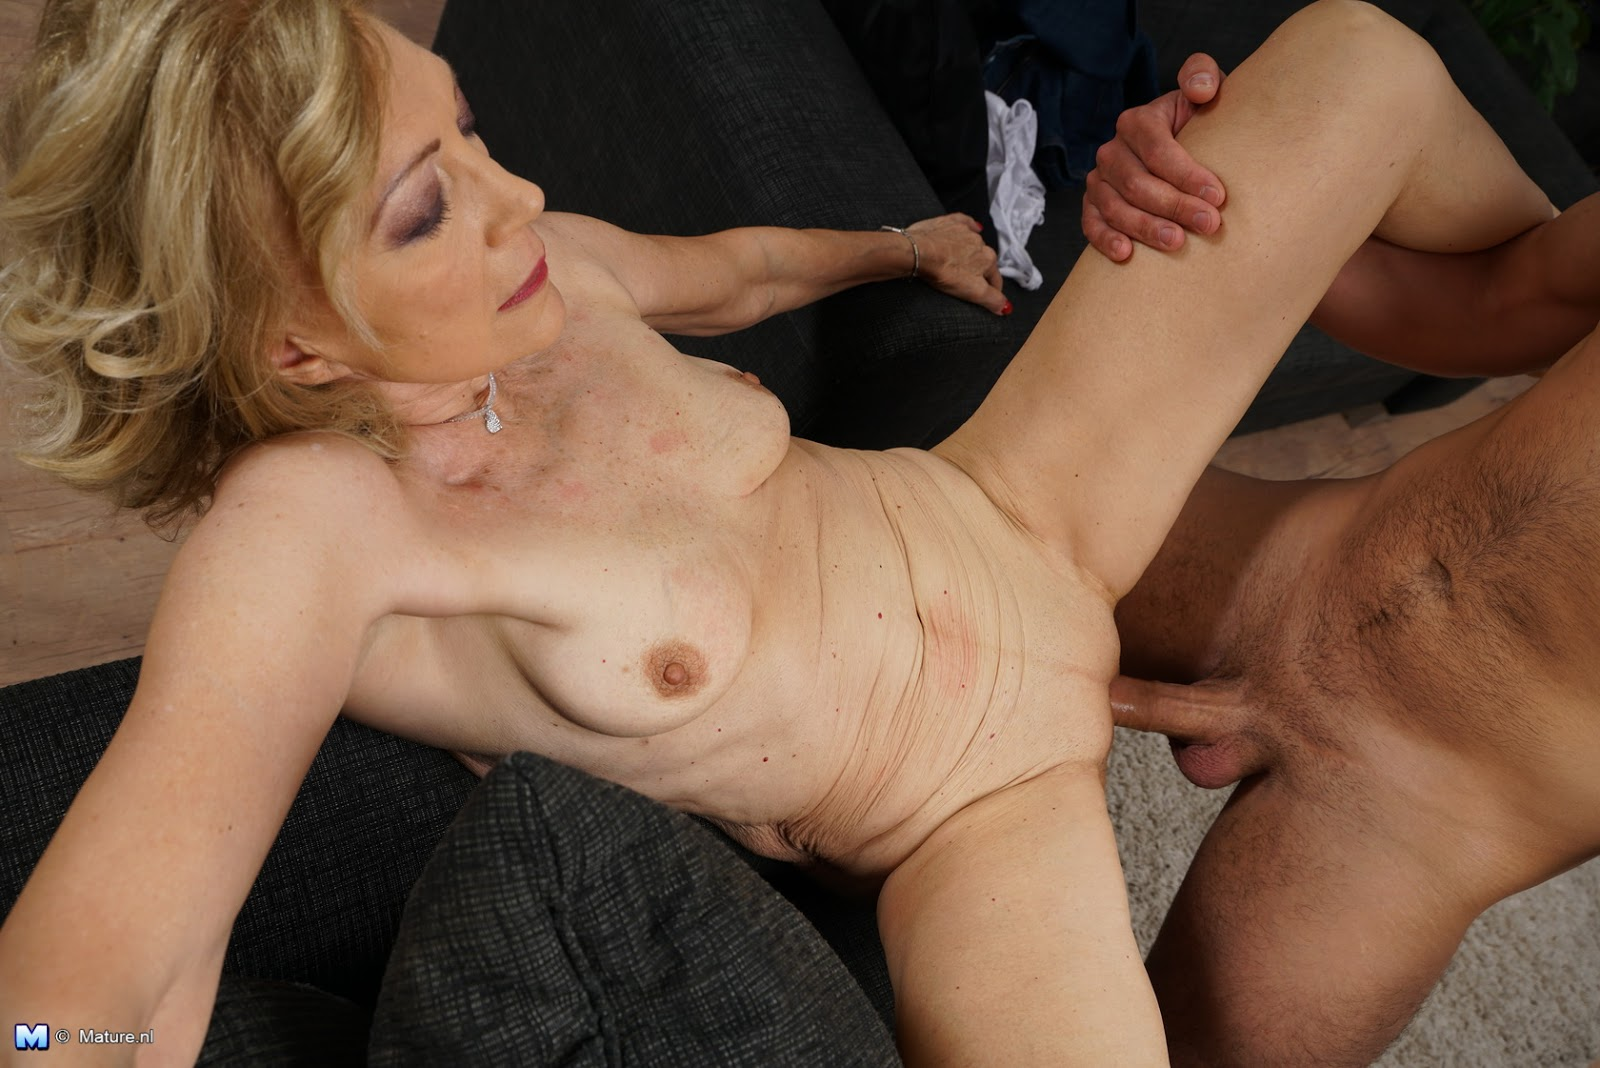 Watch Mature Archive 19 In Hd Imgs Daily Updates - Www -9819